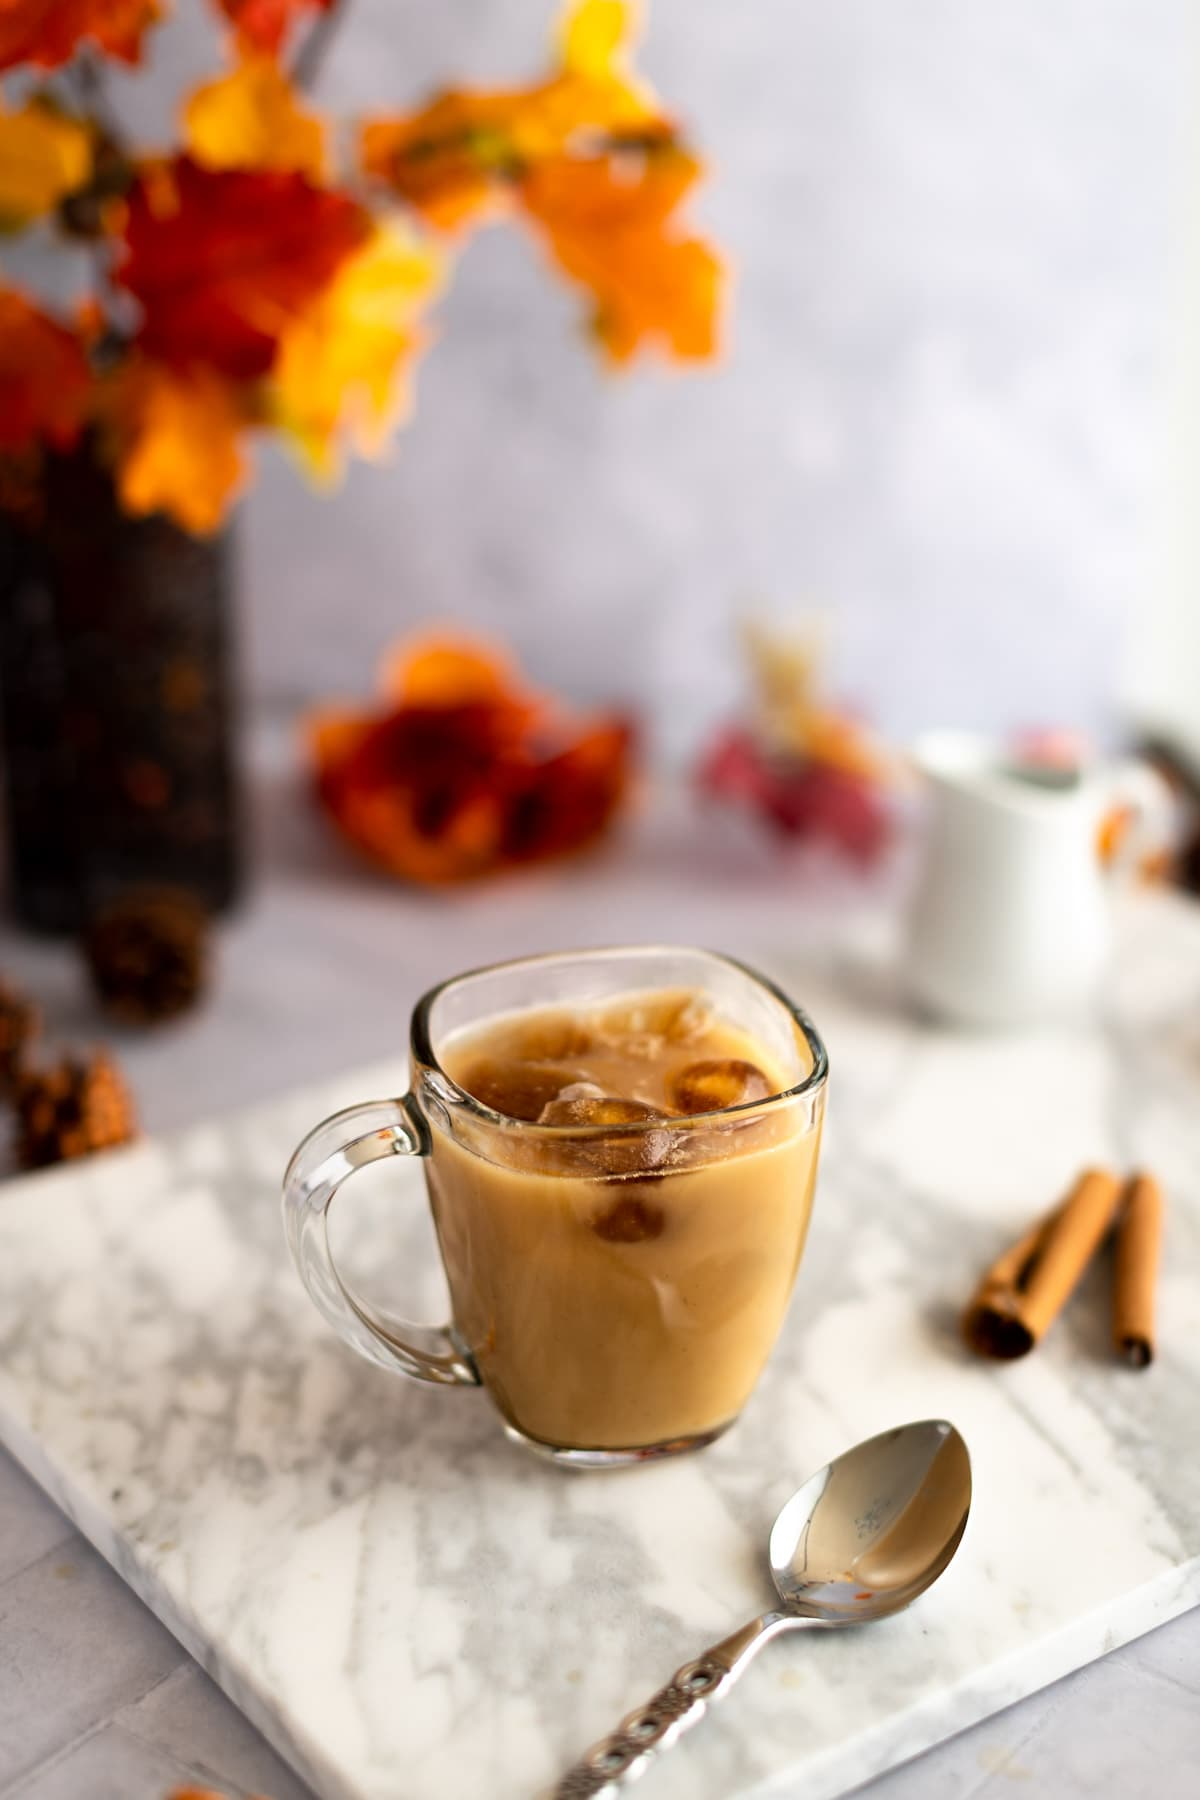 Iced chai latte on a white marble board, next to a metal spoon, cinnamon sticks, with leaves and pinecones in the background.